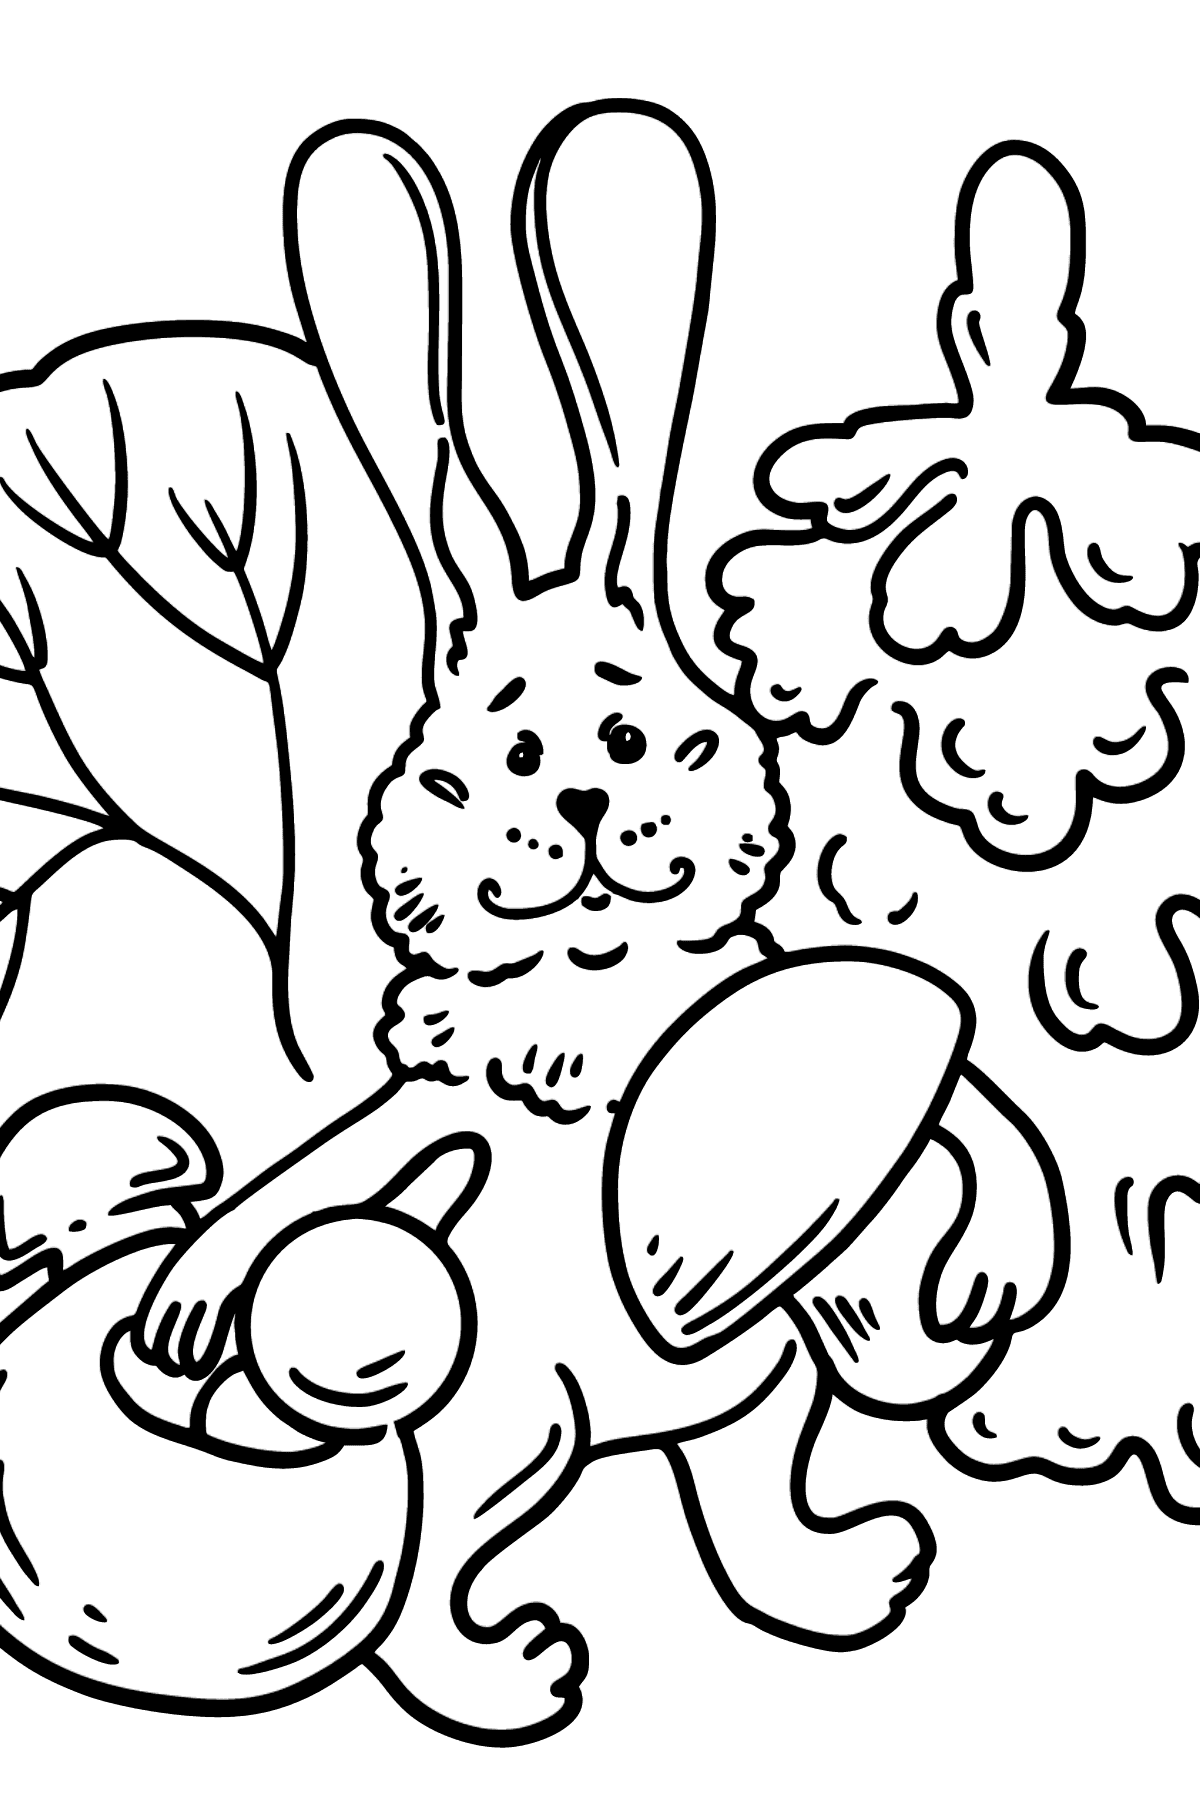 Bunny in the Forest coloring page - Coloring Pages for Kids